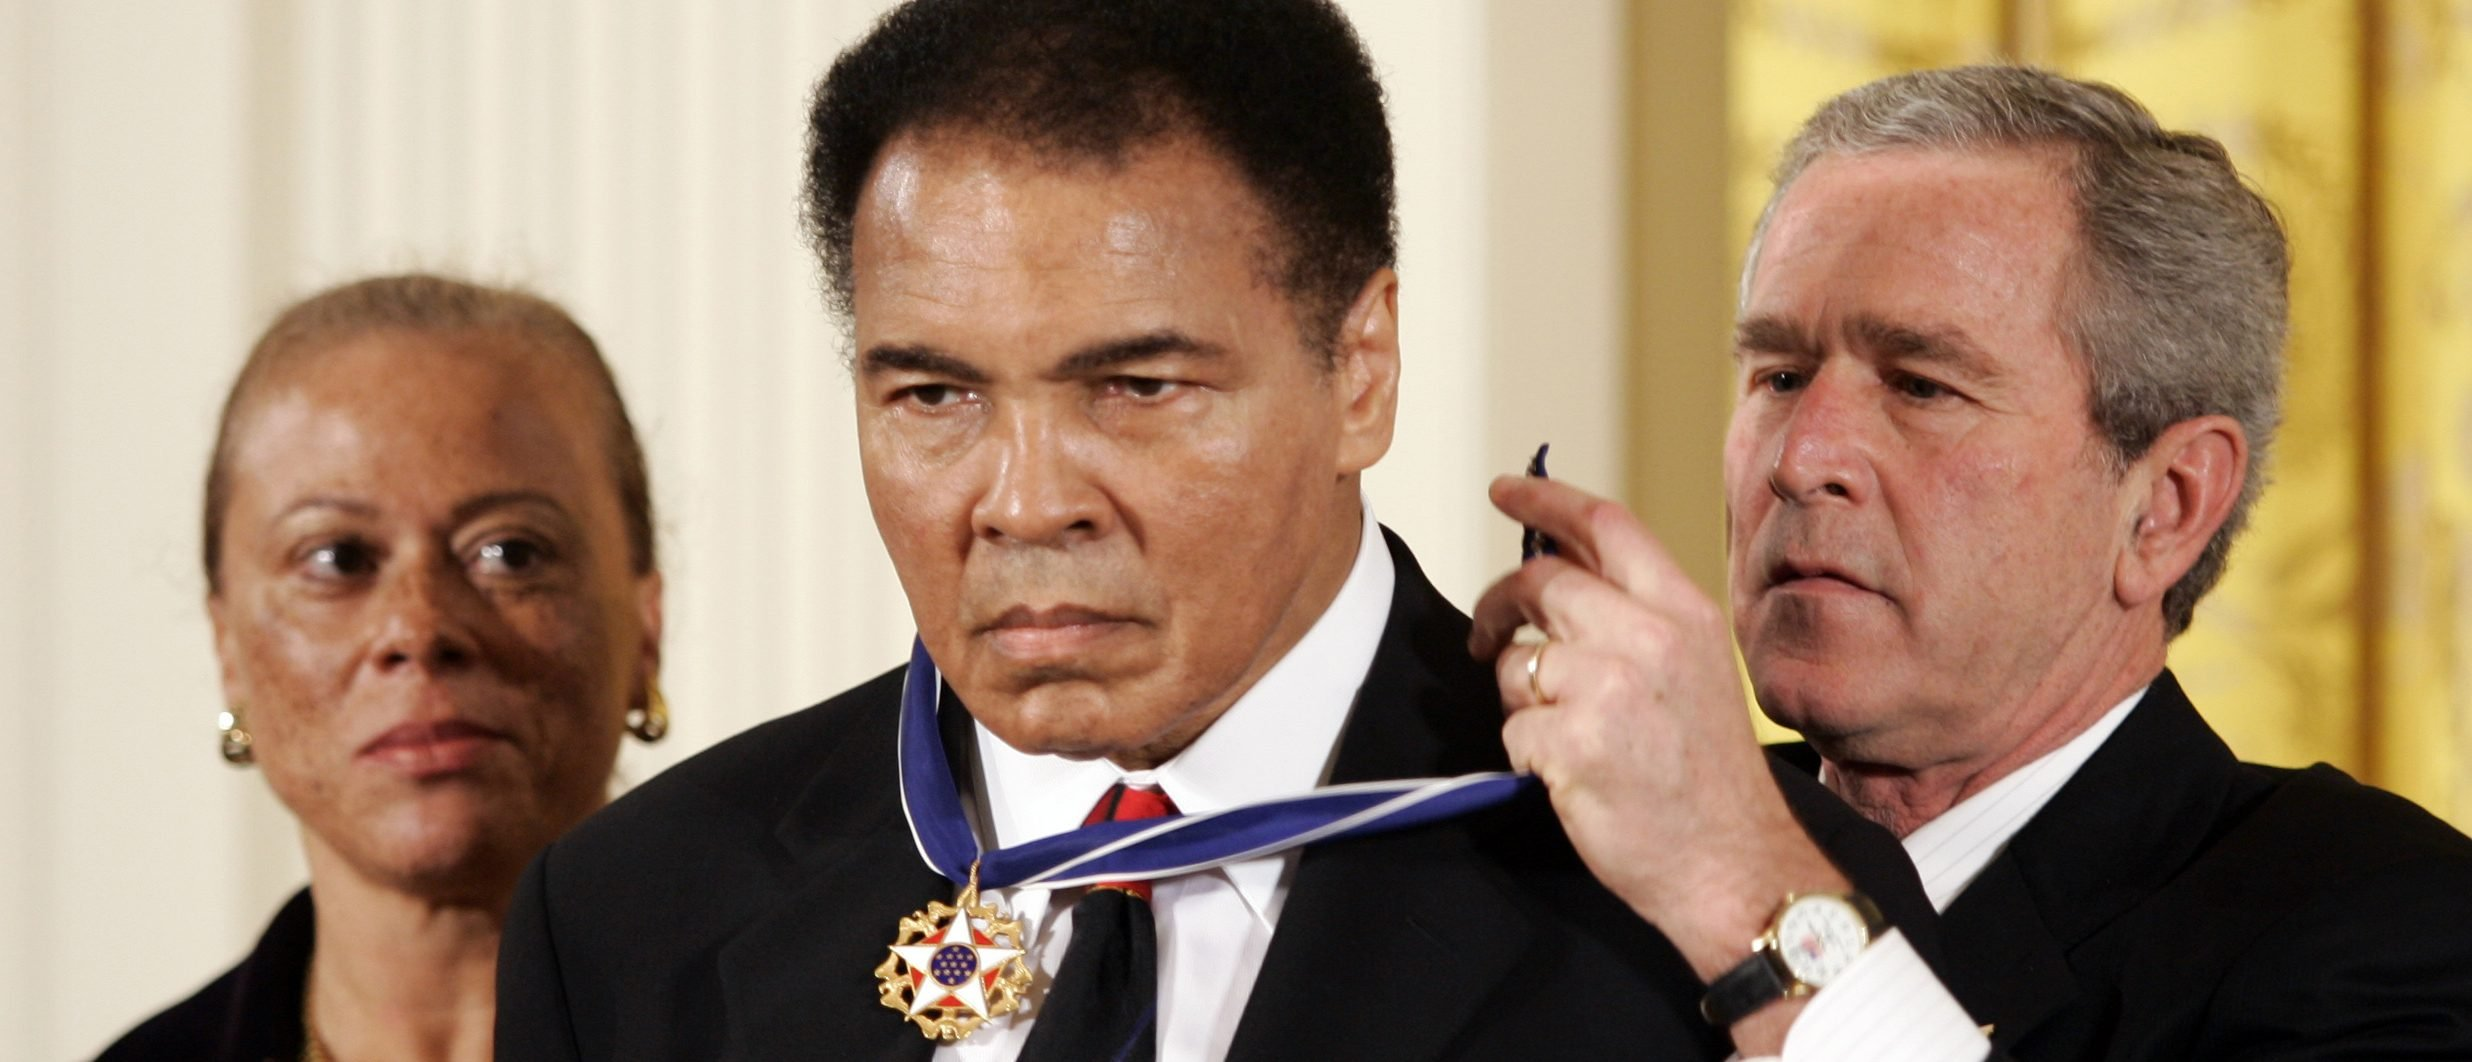 US President Bush awards boxing legend Muhammad Ali with the Presidential Medal of Freedom in Washington (Getty Images)